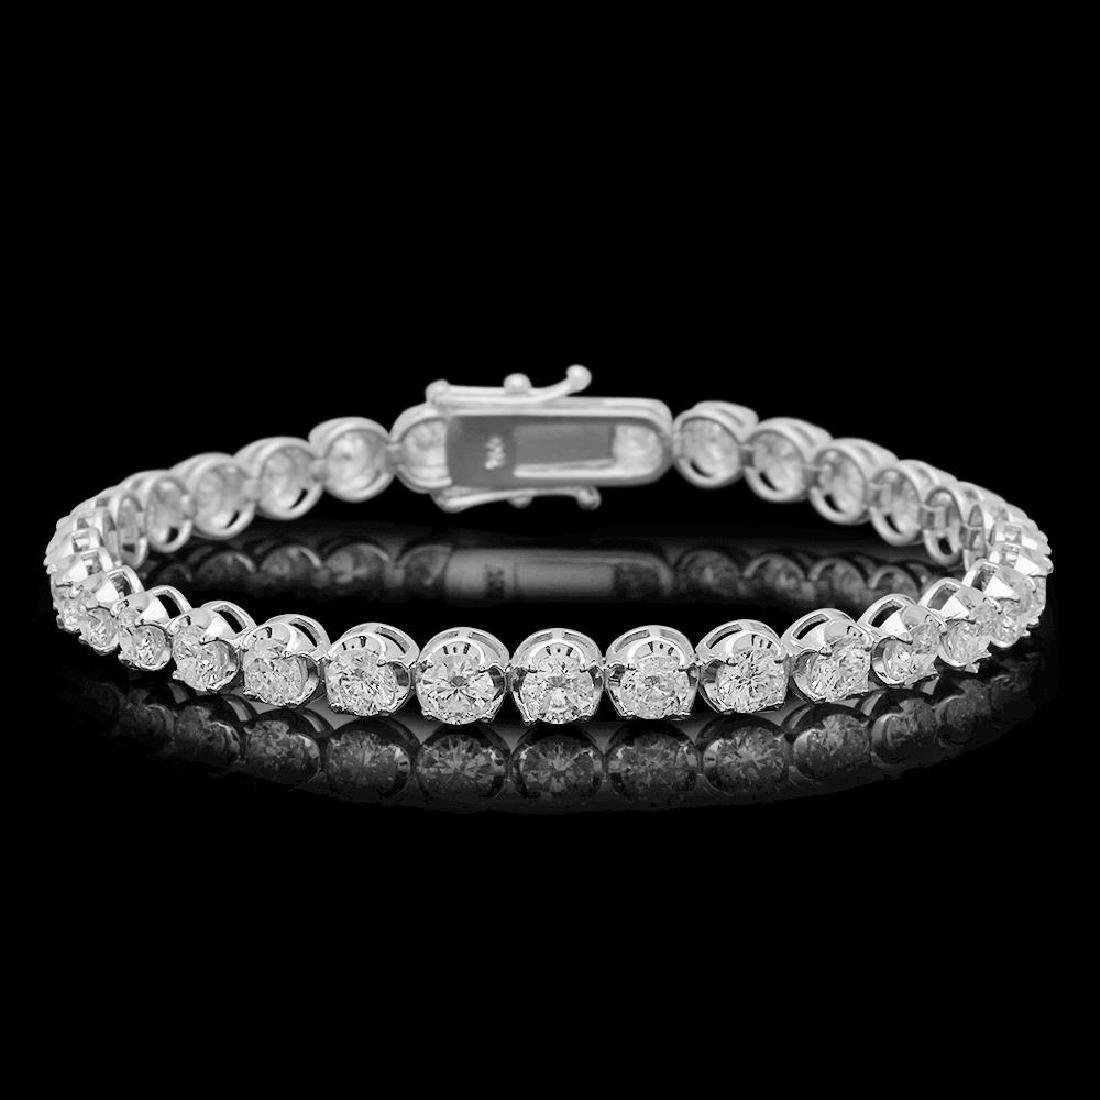 18K Gold 8.54ct Diamond Bracelet